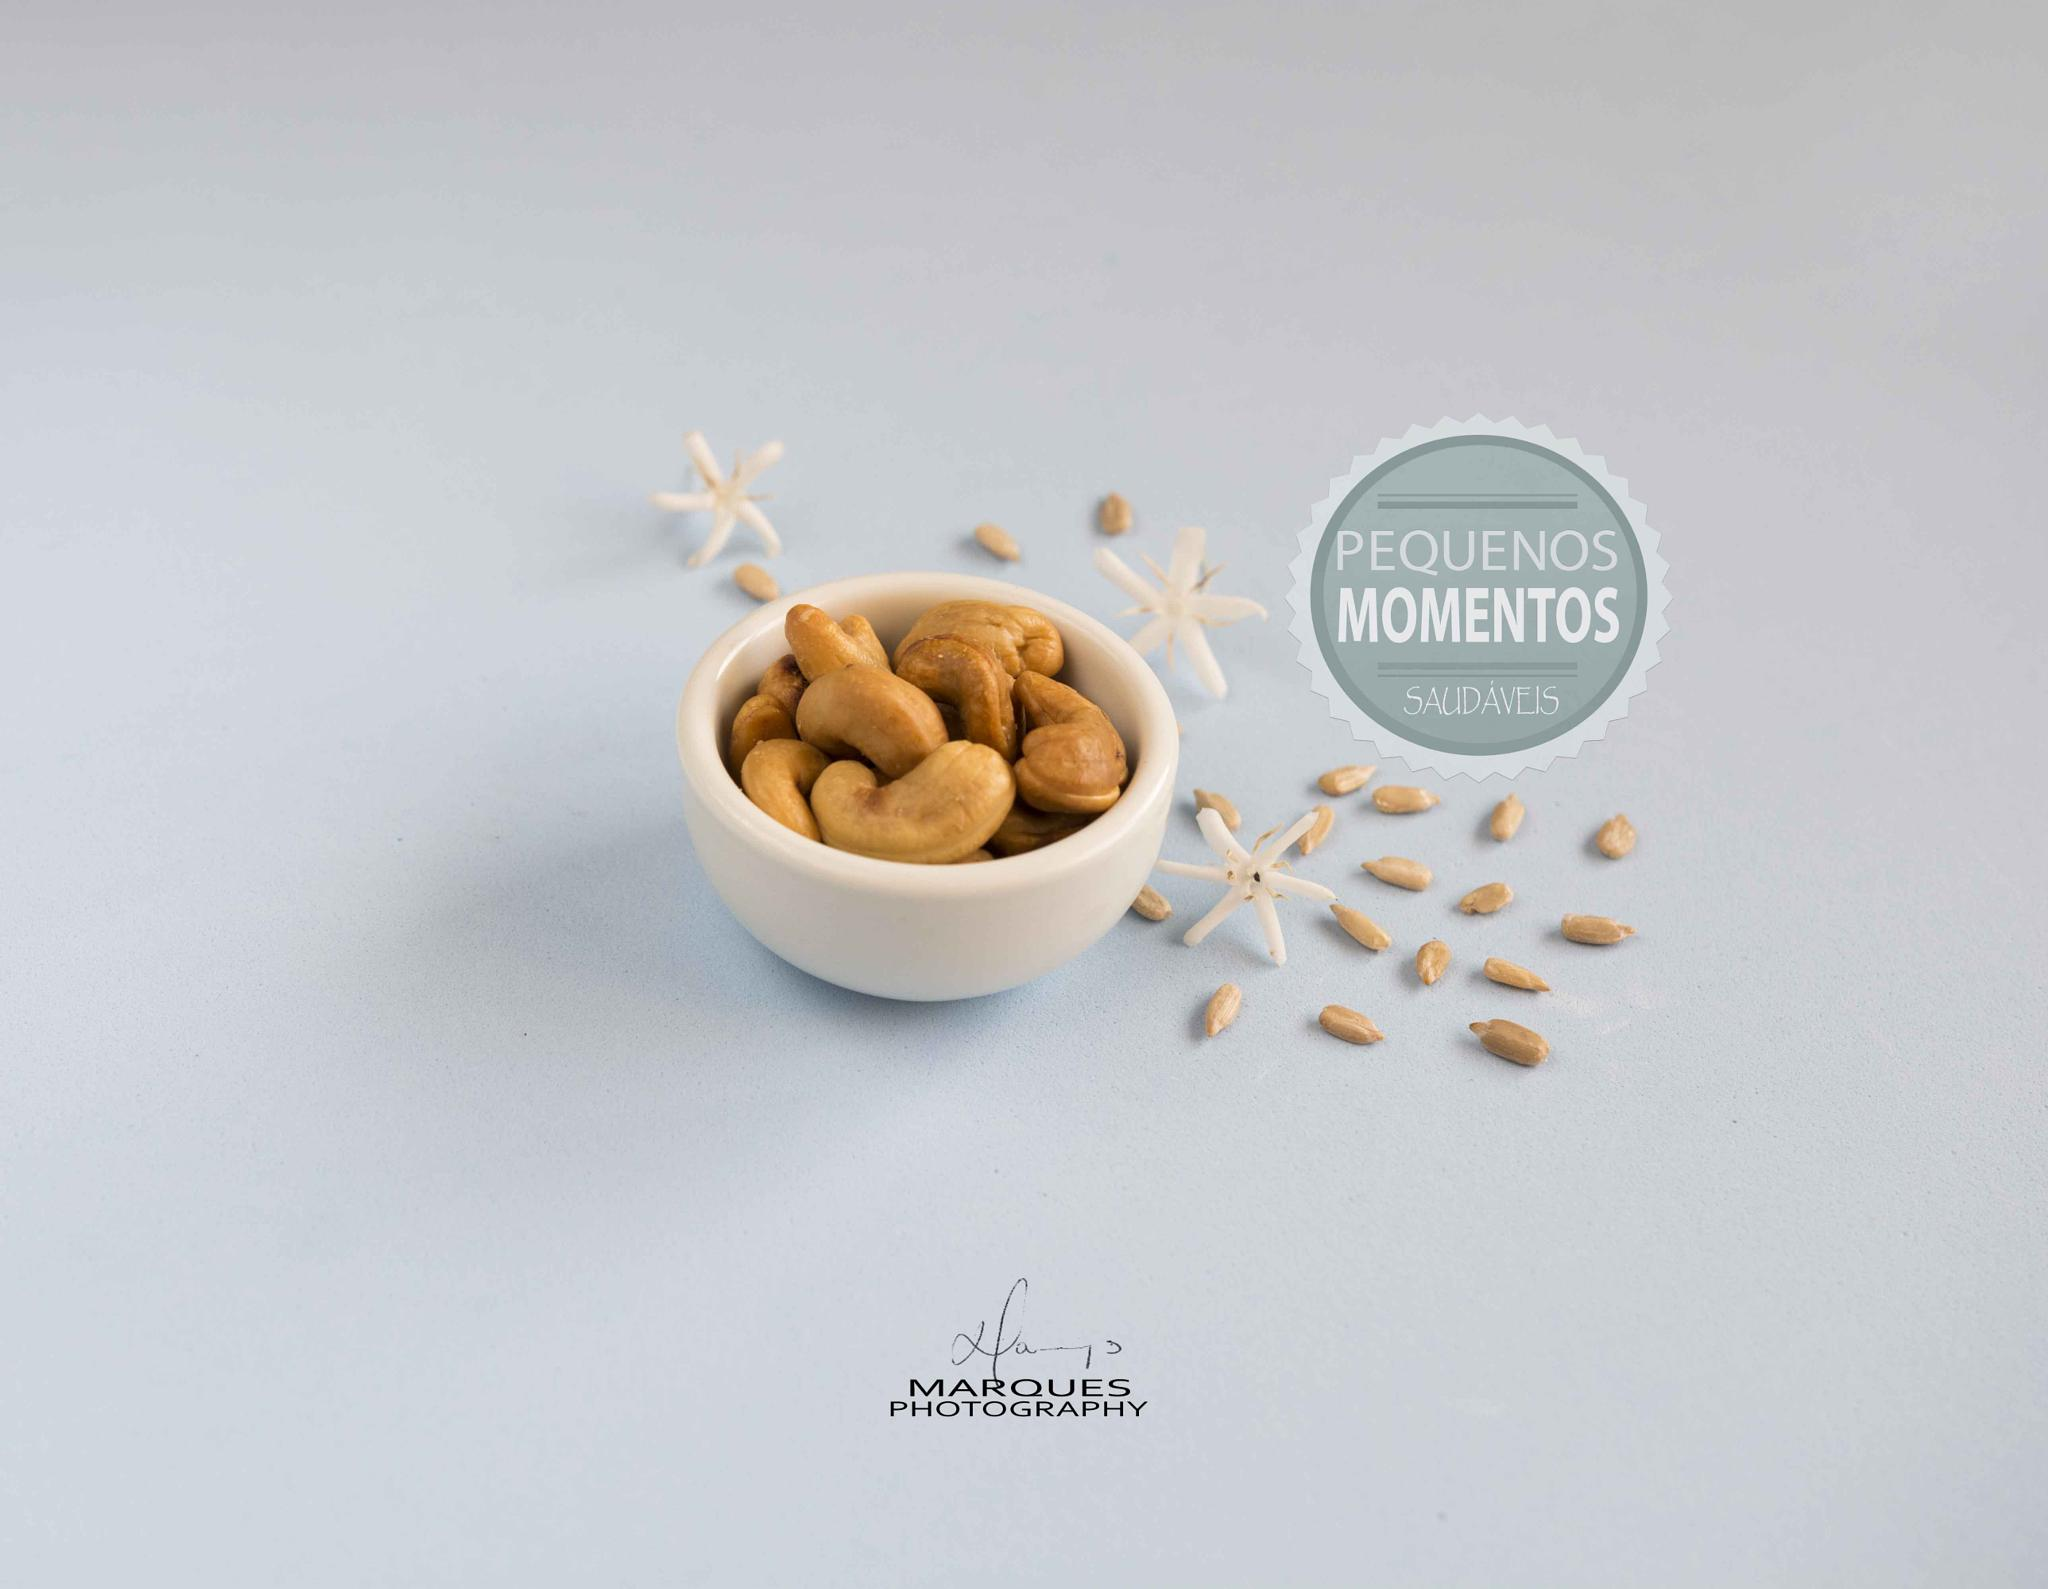 Food by renato marques